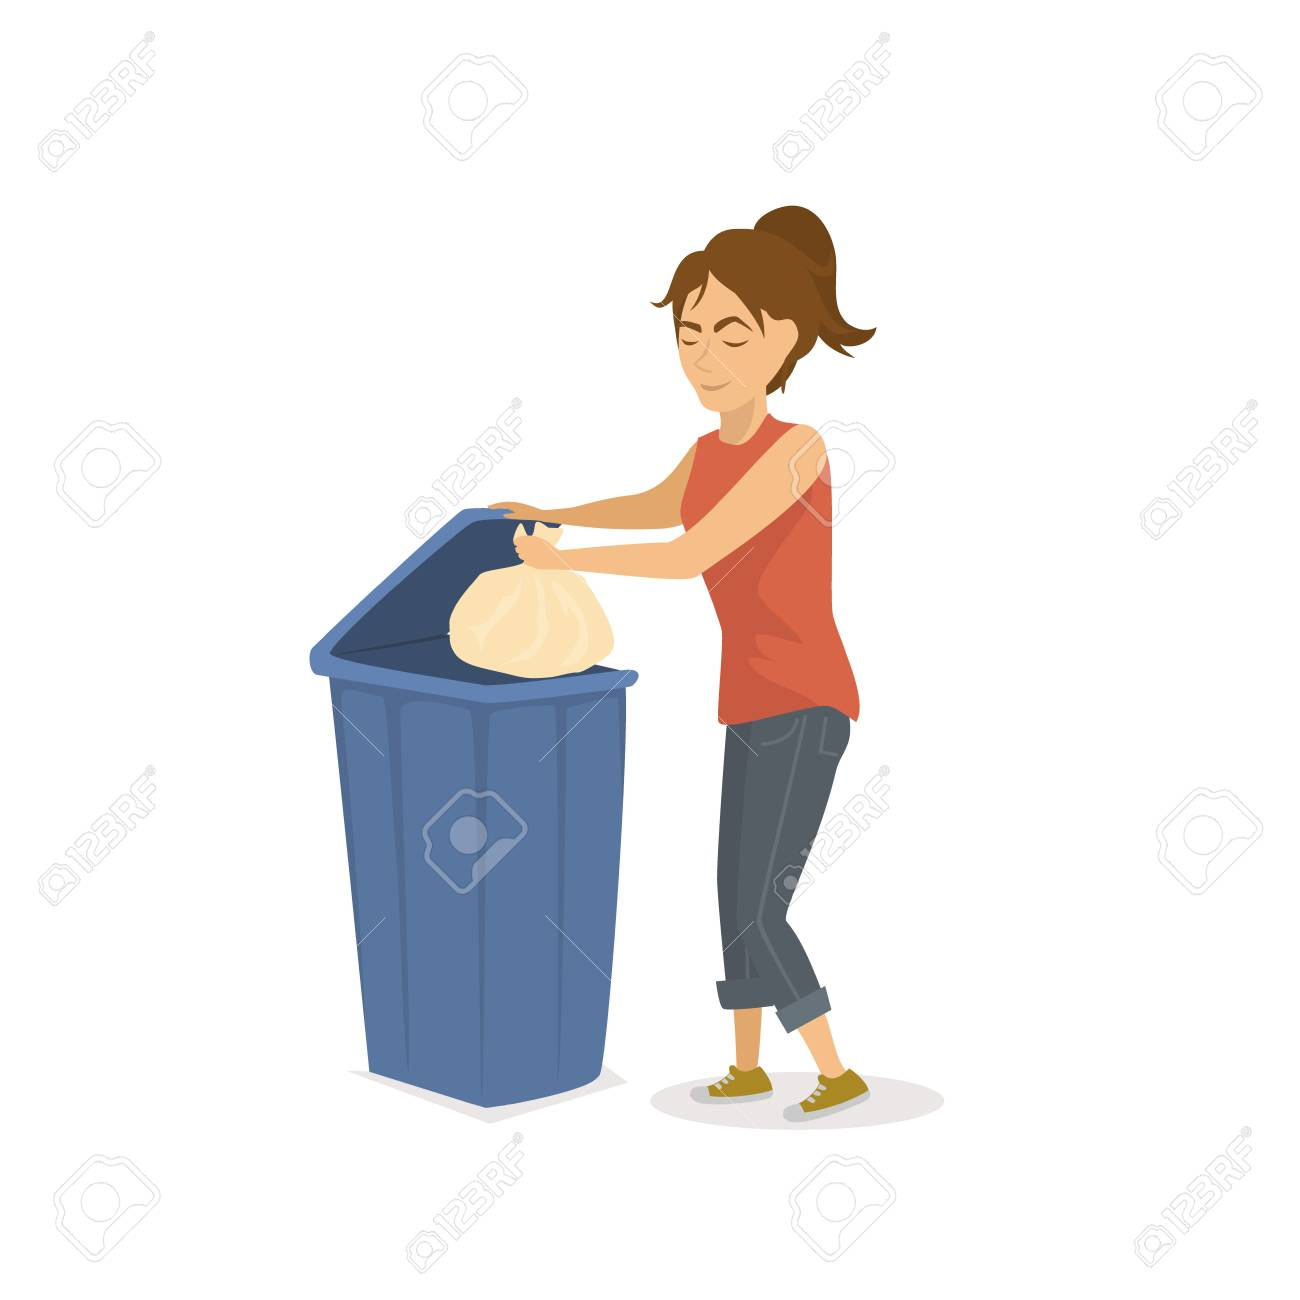 Laundry Trash Cans Woman Throwing Plastic Trash Garbage In A Trash Bin Illustration